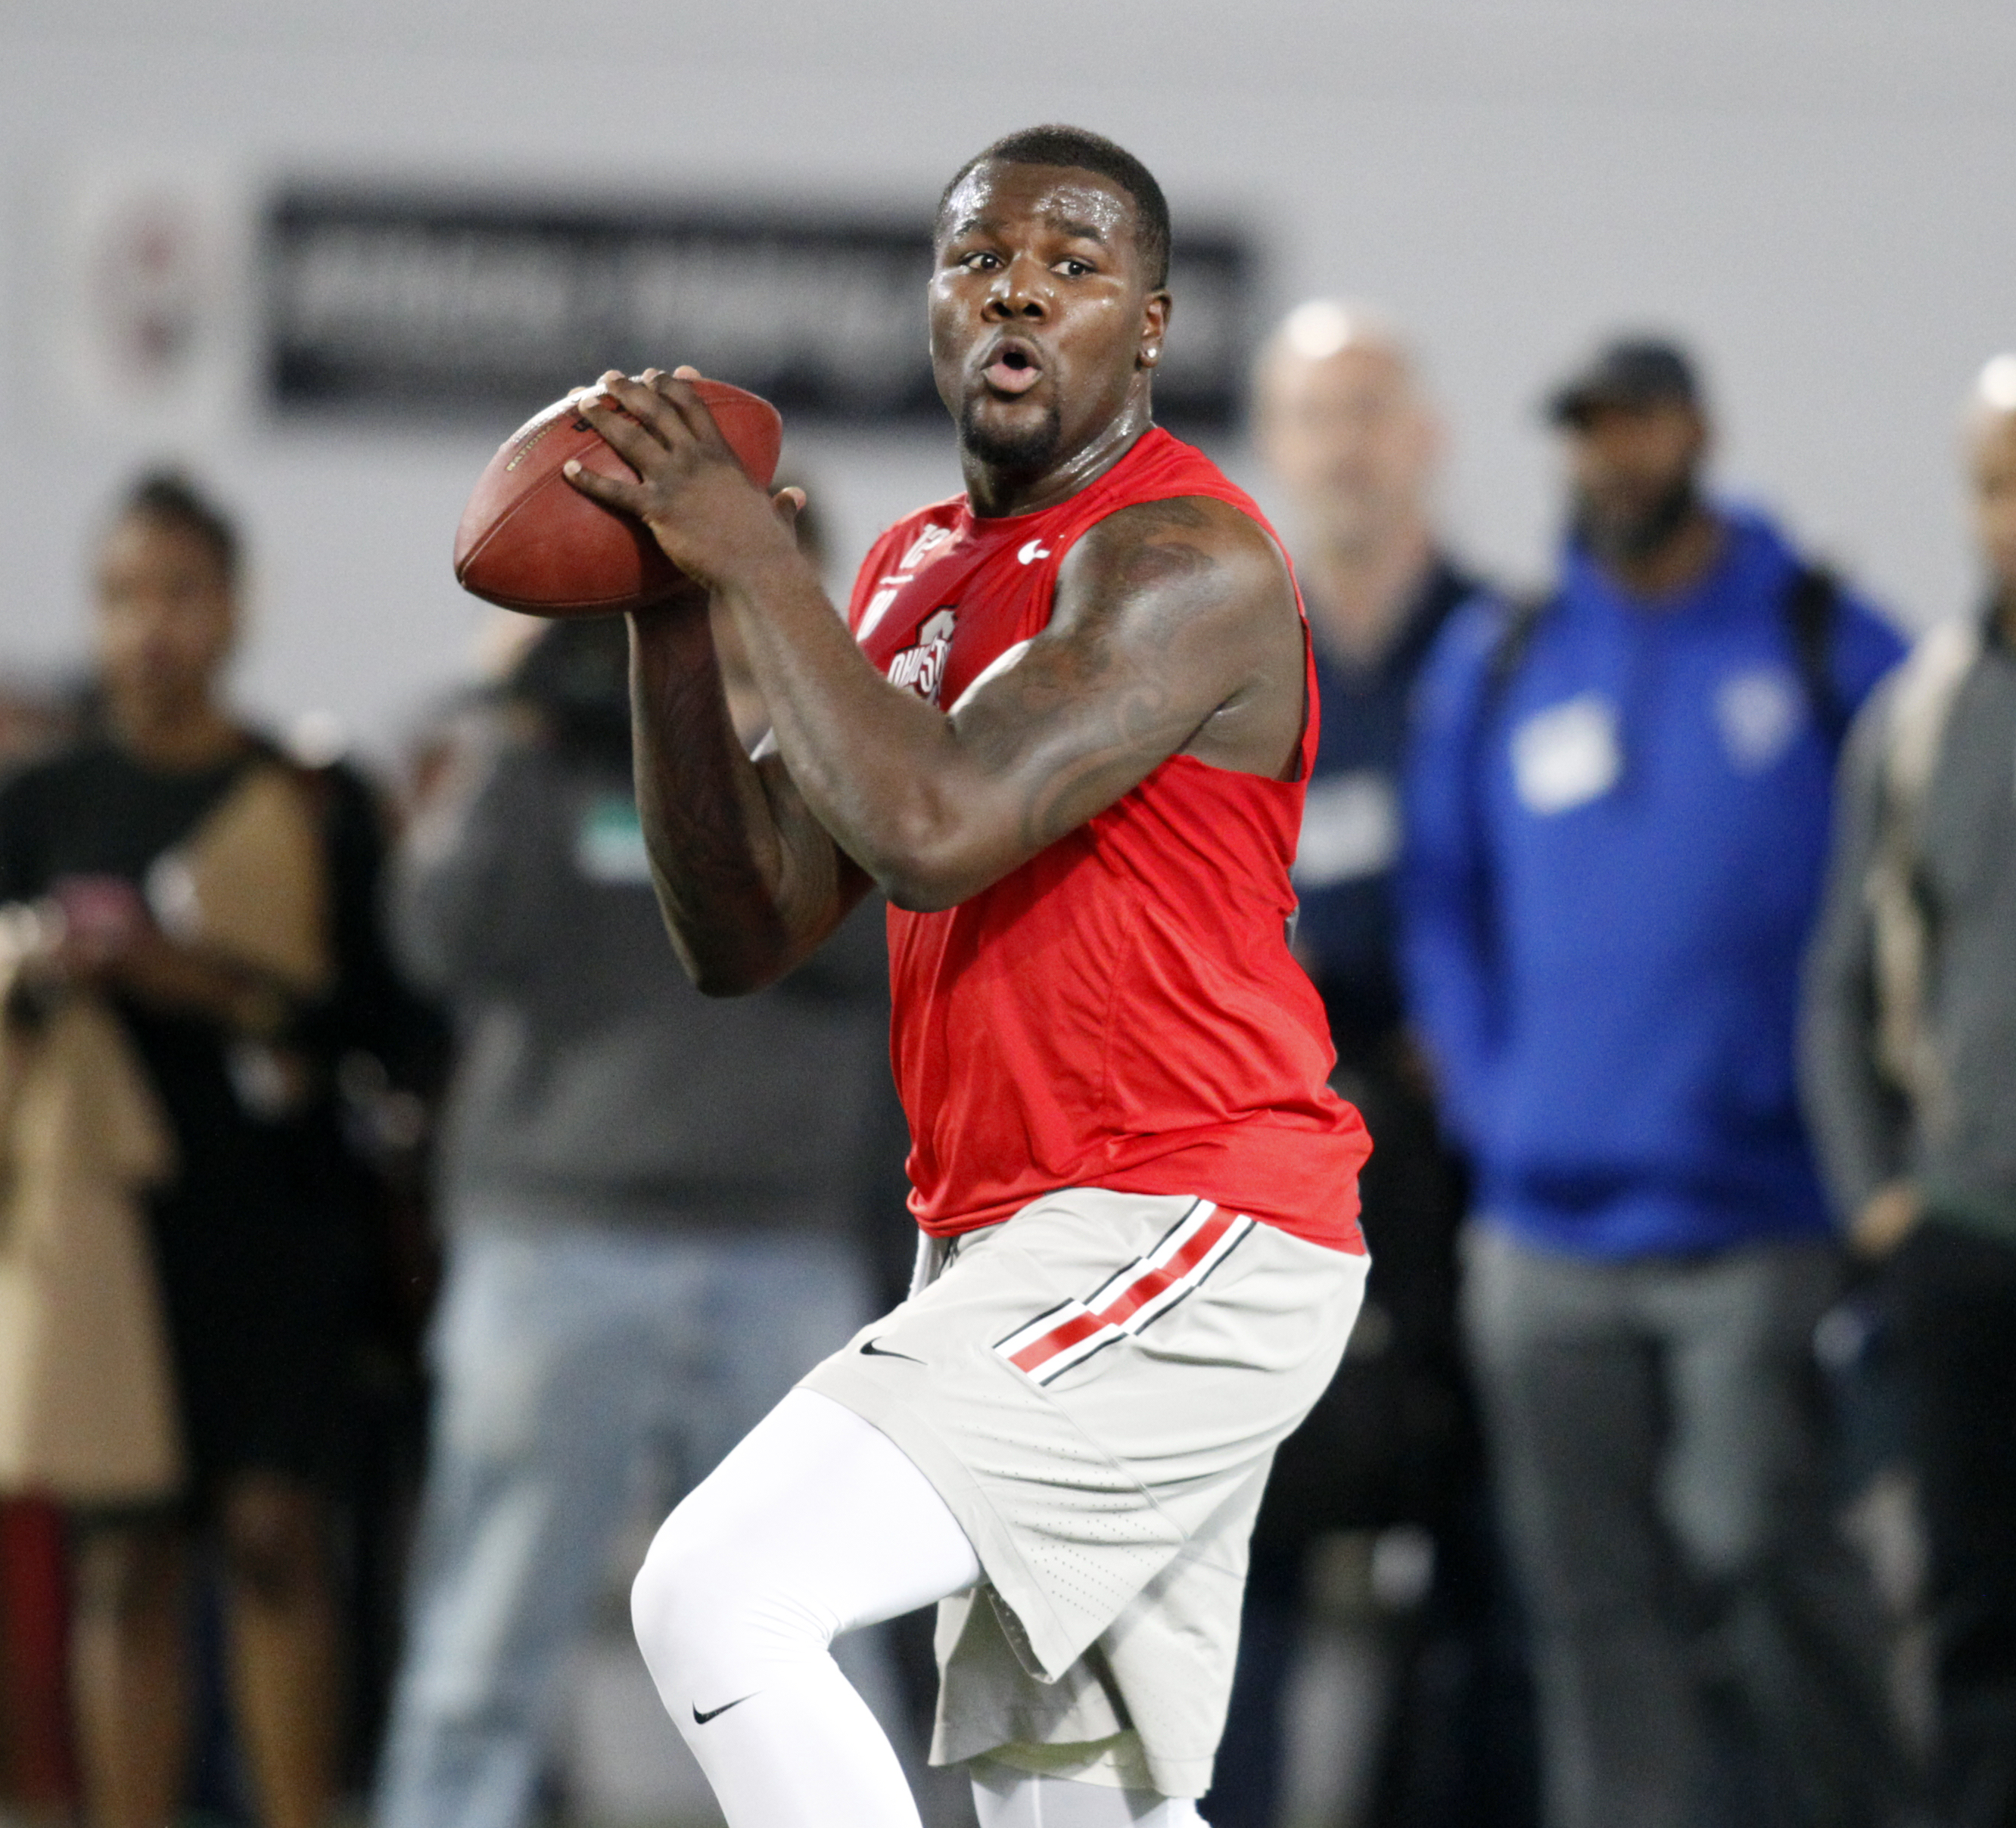 Ohio State quarterback Cardale Jones drops back to pass during NFL Pro Day at Ohio State University in Columbus, Ohio, Friday, March 11, 2016. (AP Photo/Paul Vernon)